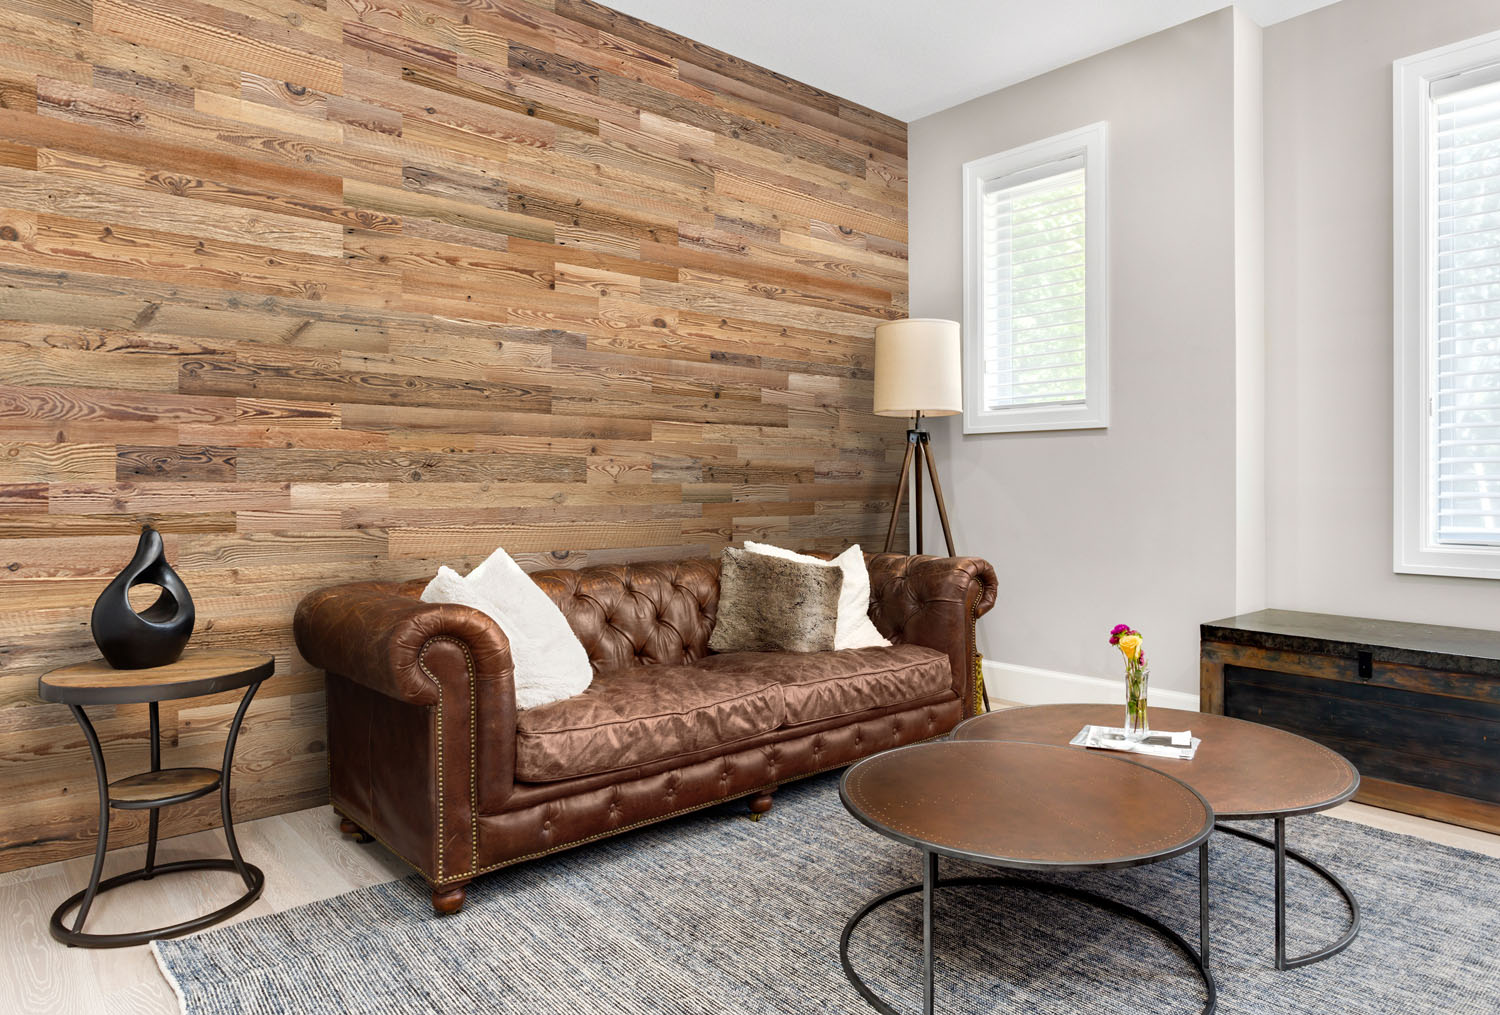 Wall panels behind vintage couch